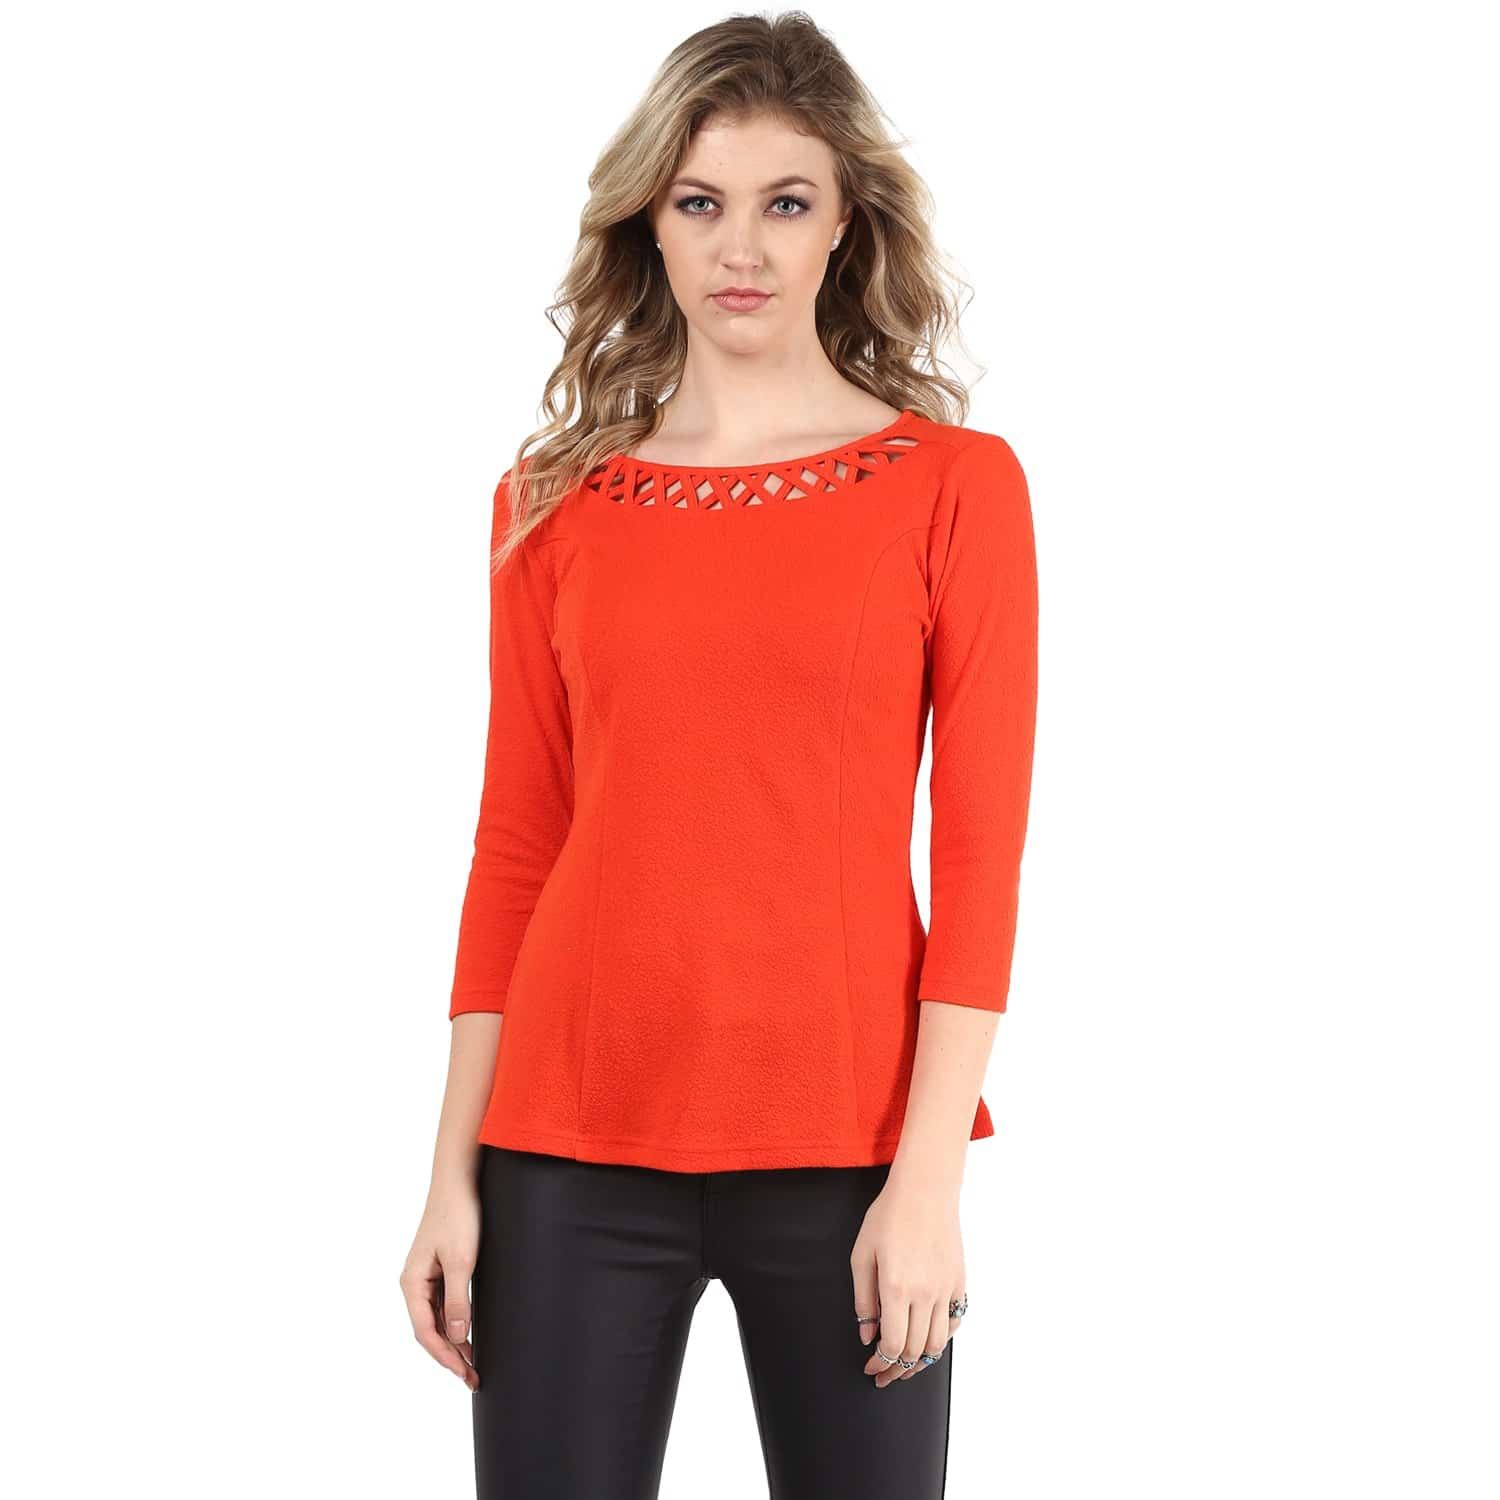 Red Jacquard Neck Detailing Line Top